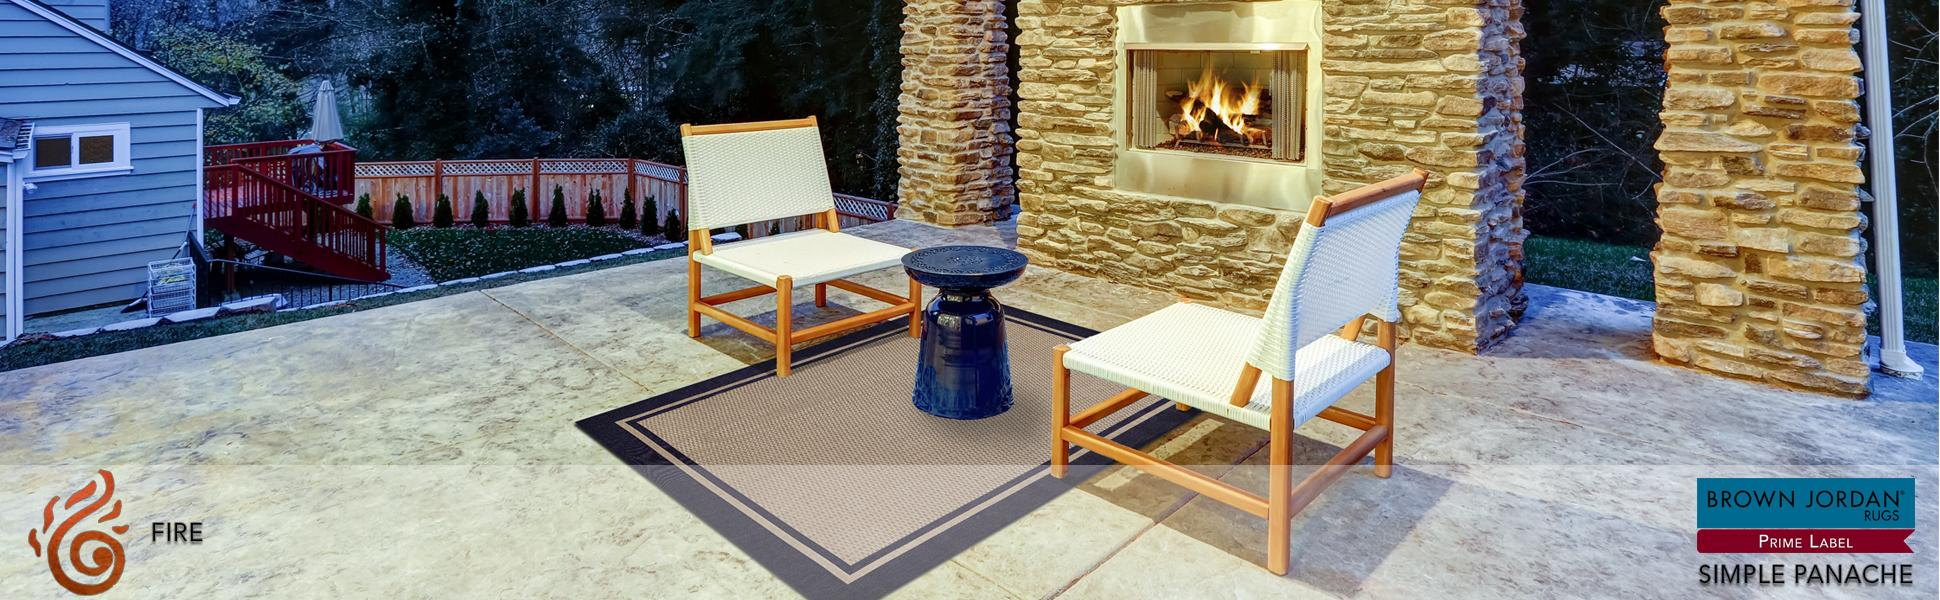 Brown Jordan Prime Label Outdoor Furniture Rug 8x10 Furman Collection Blue Sisal